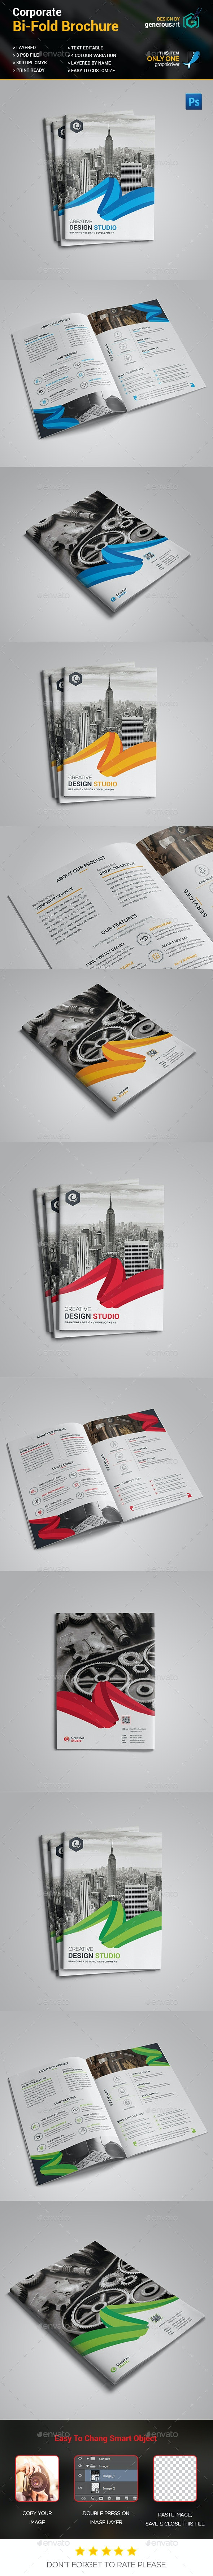 Bi-Fold Business Brochure Template - Brochures Print Templates